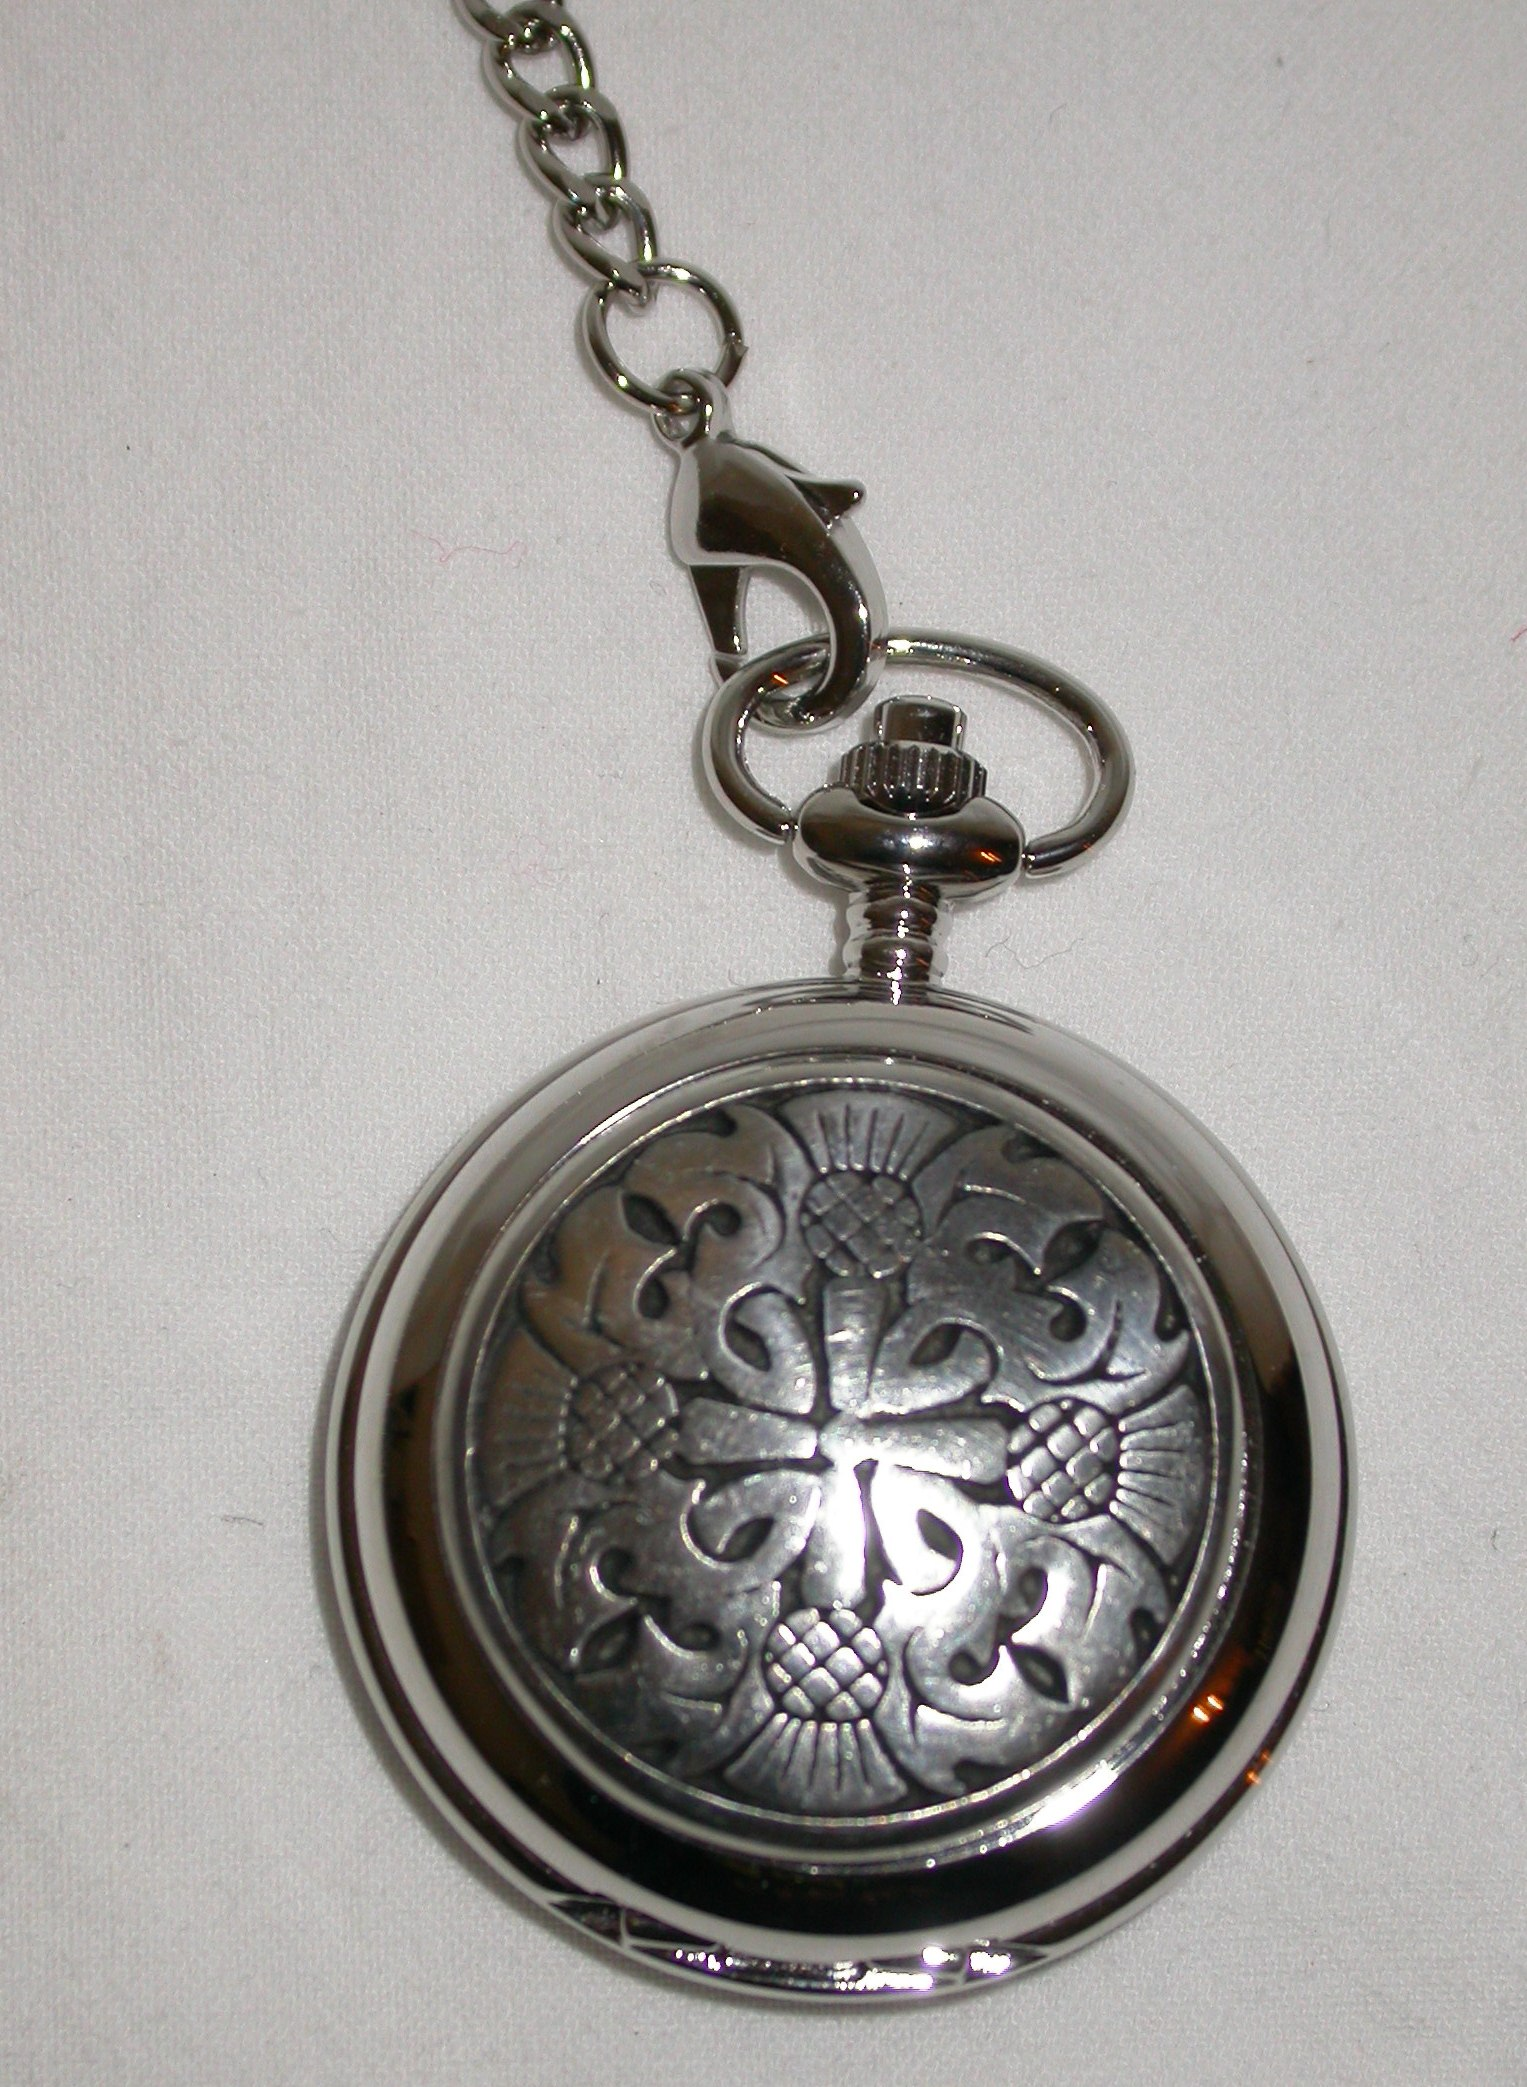 4 Thistle Pocket Watch PW23